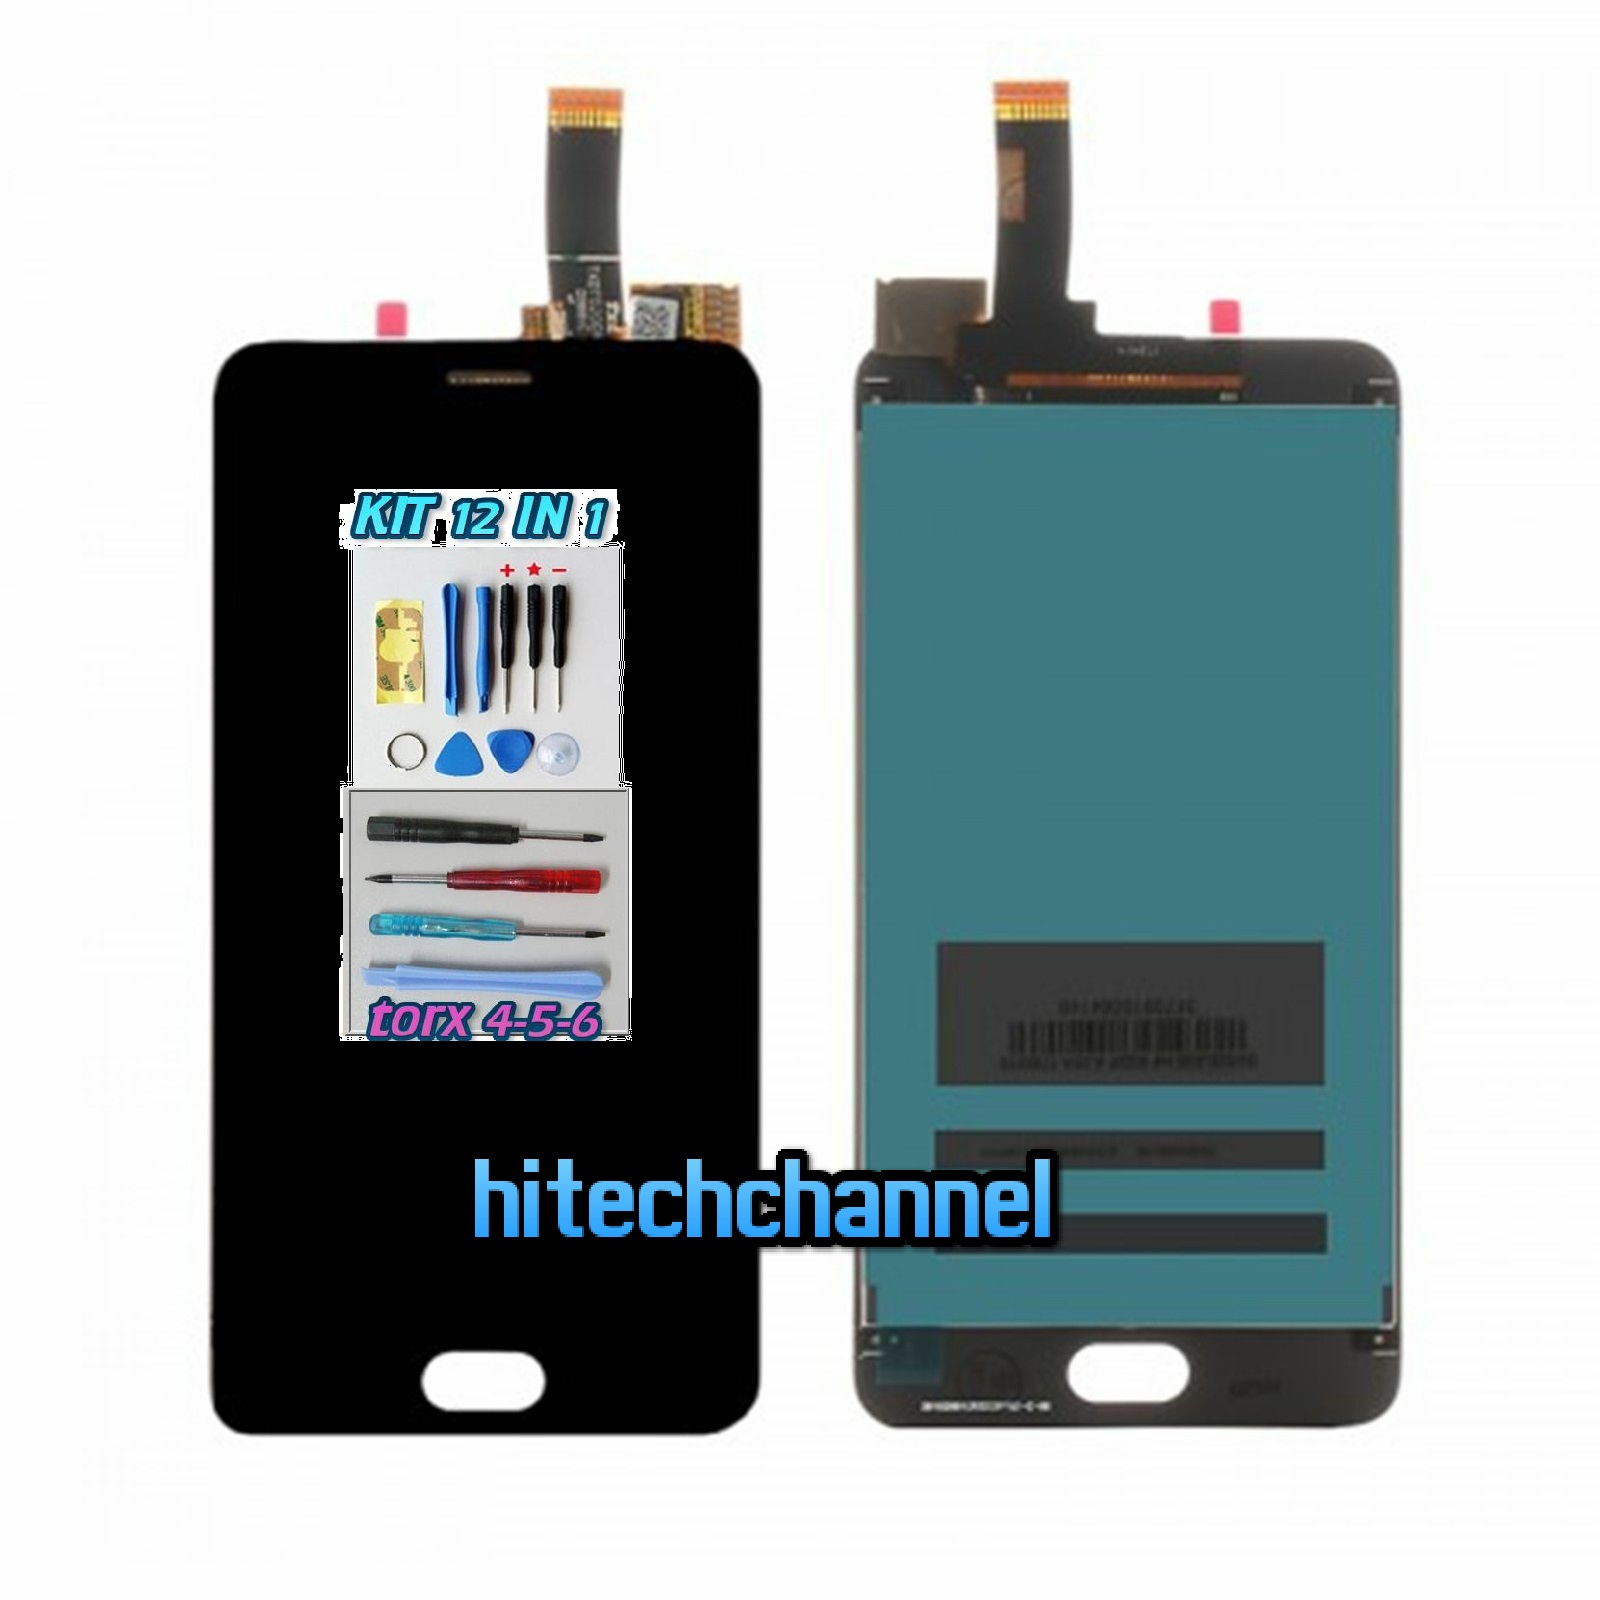 TOUCH SCREEN LCD DISPLAY MEIZU M6 NERO kit 9 in 1 biadesivo